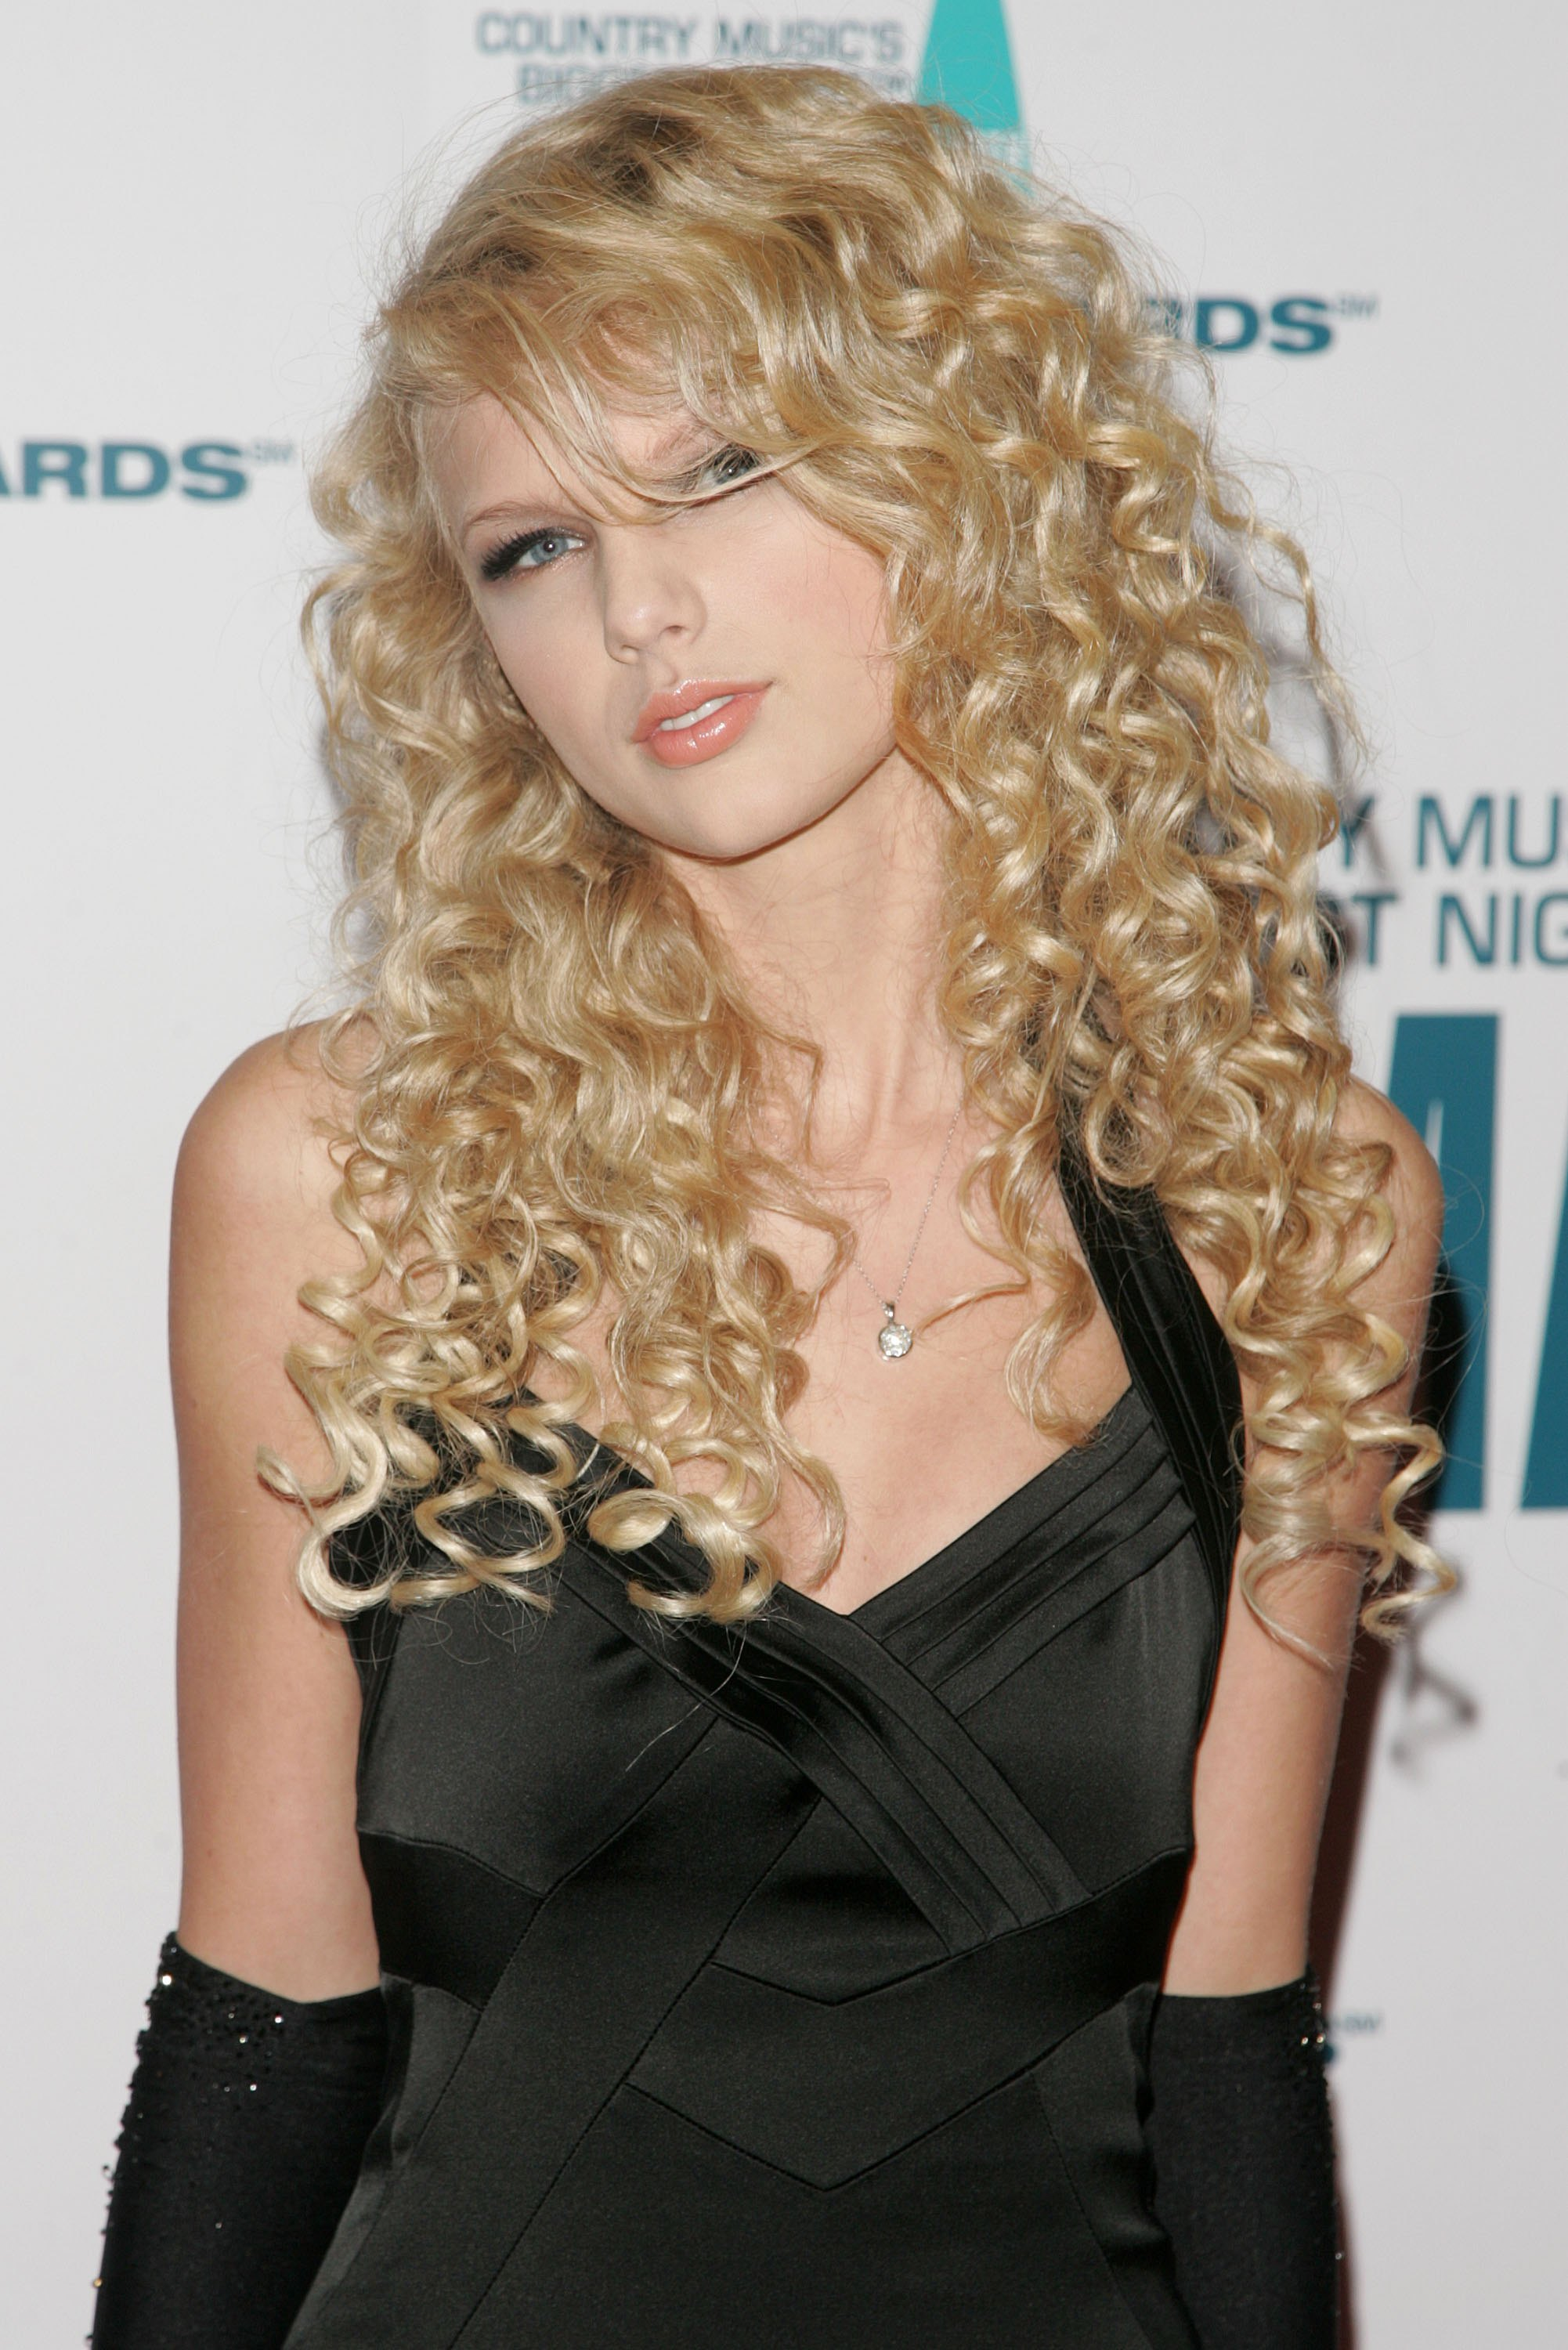 Taylor Swift S 8 Year Transformation From Country Princess To Full Blown Pop Star Videos